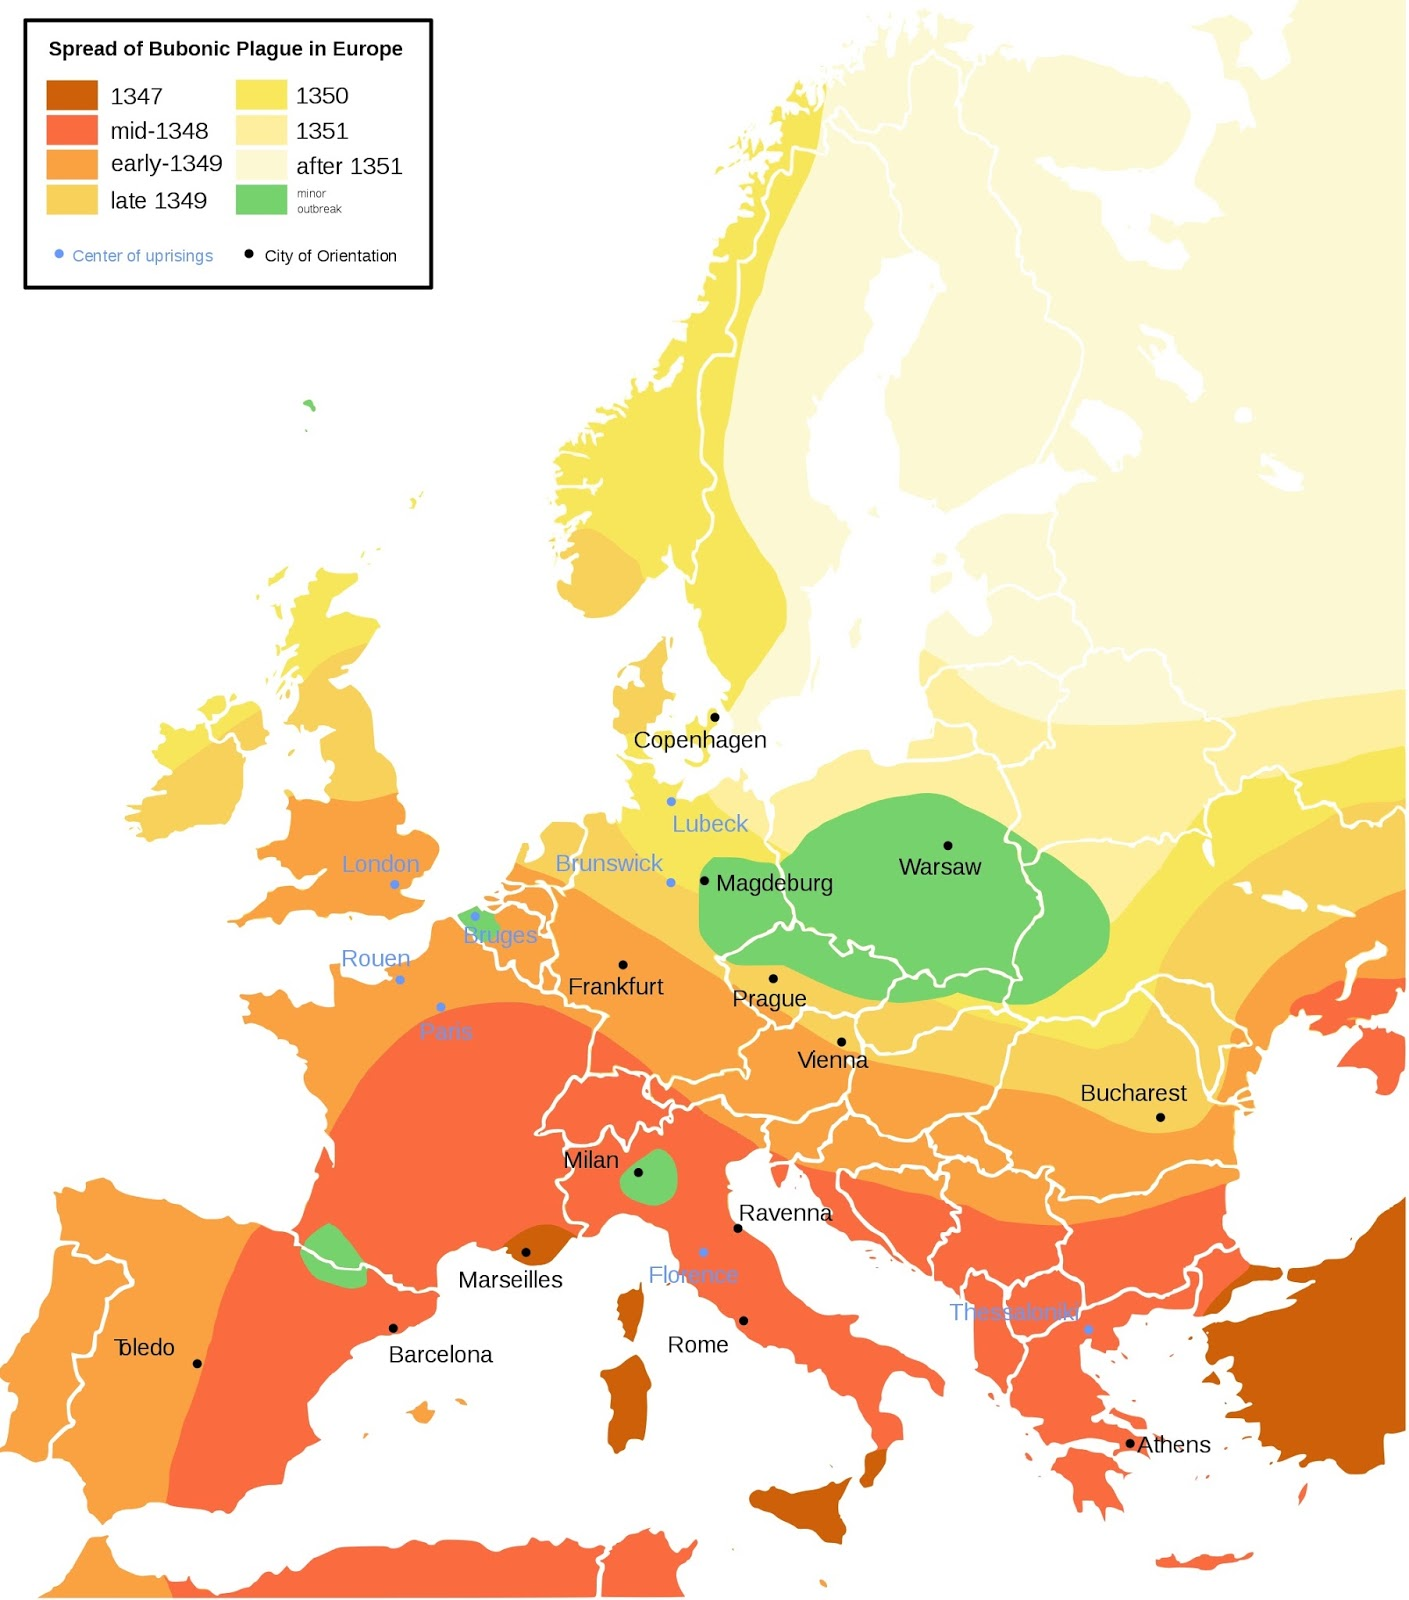 Spread of the Bubonic plague in Europe